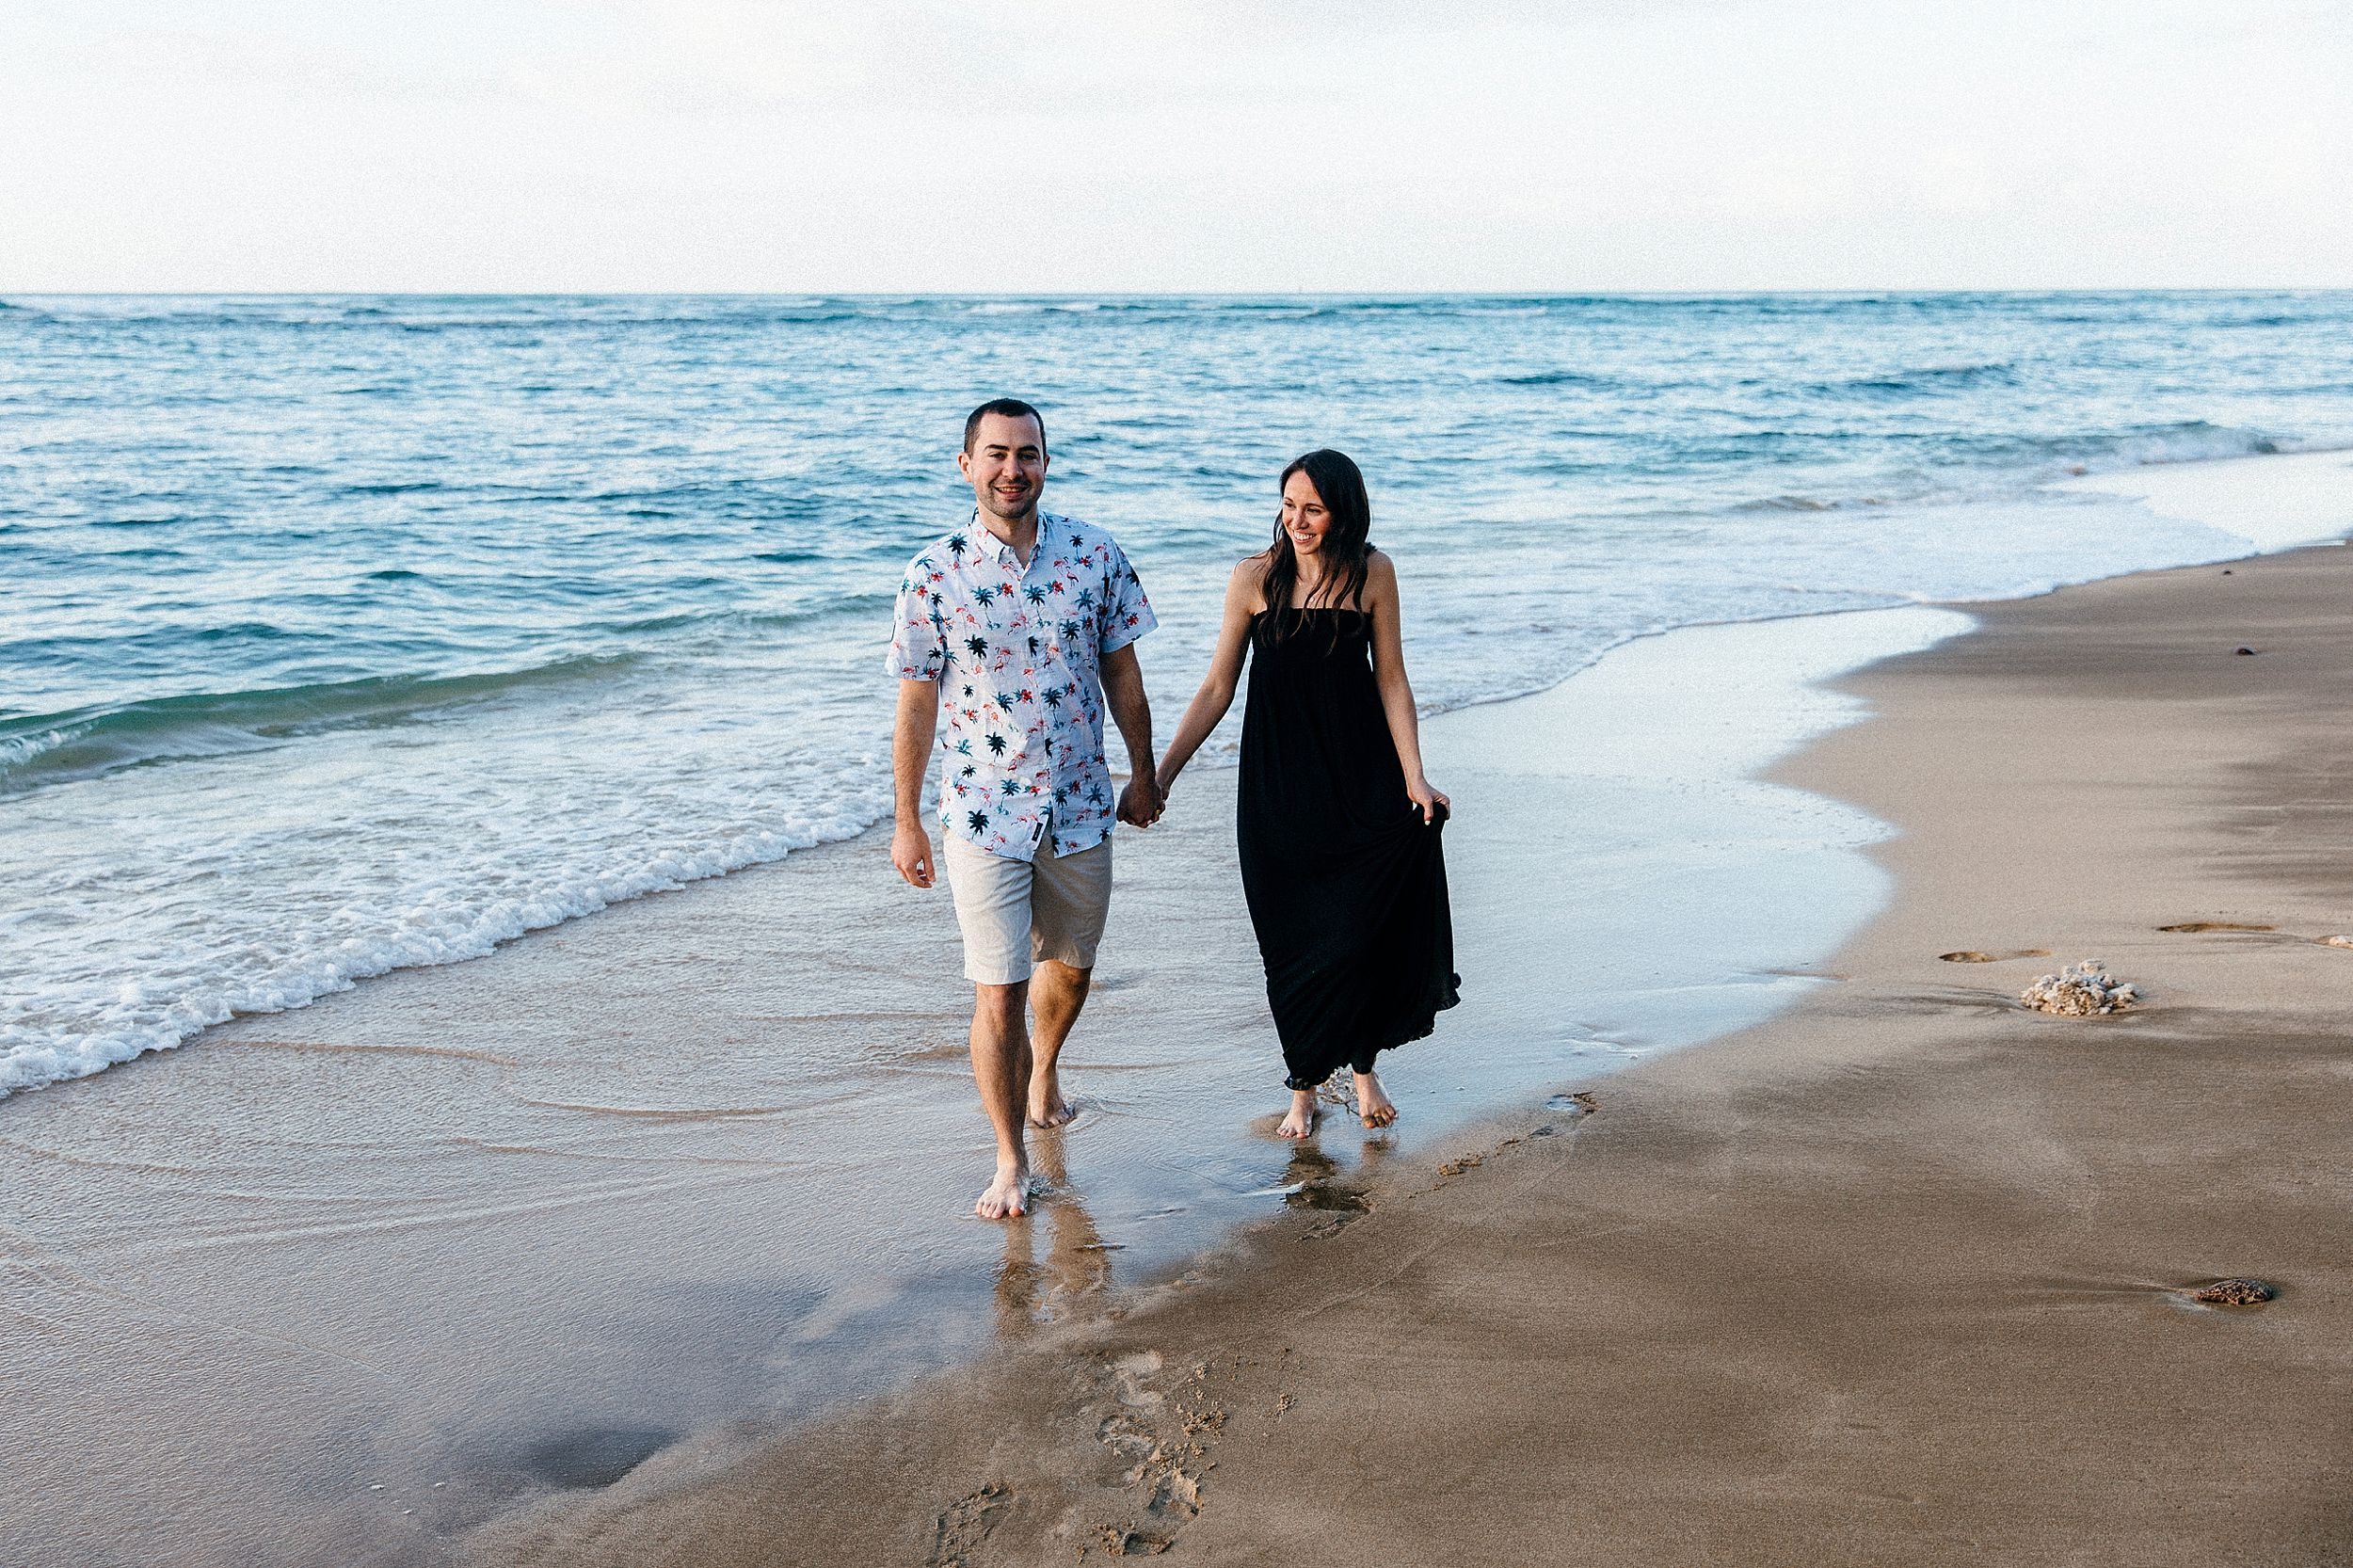 Honeymoon beach portraits in Hawaii